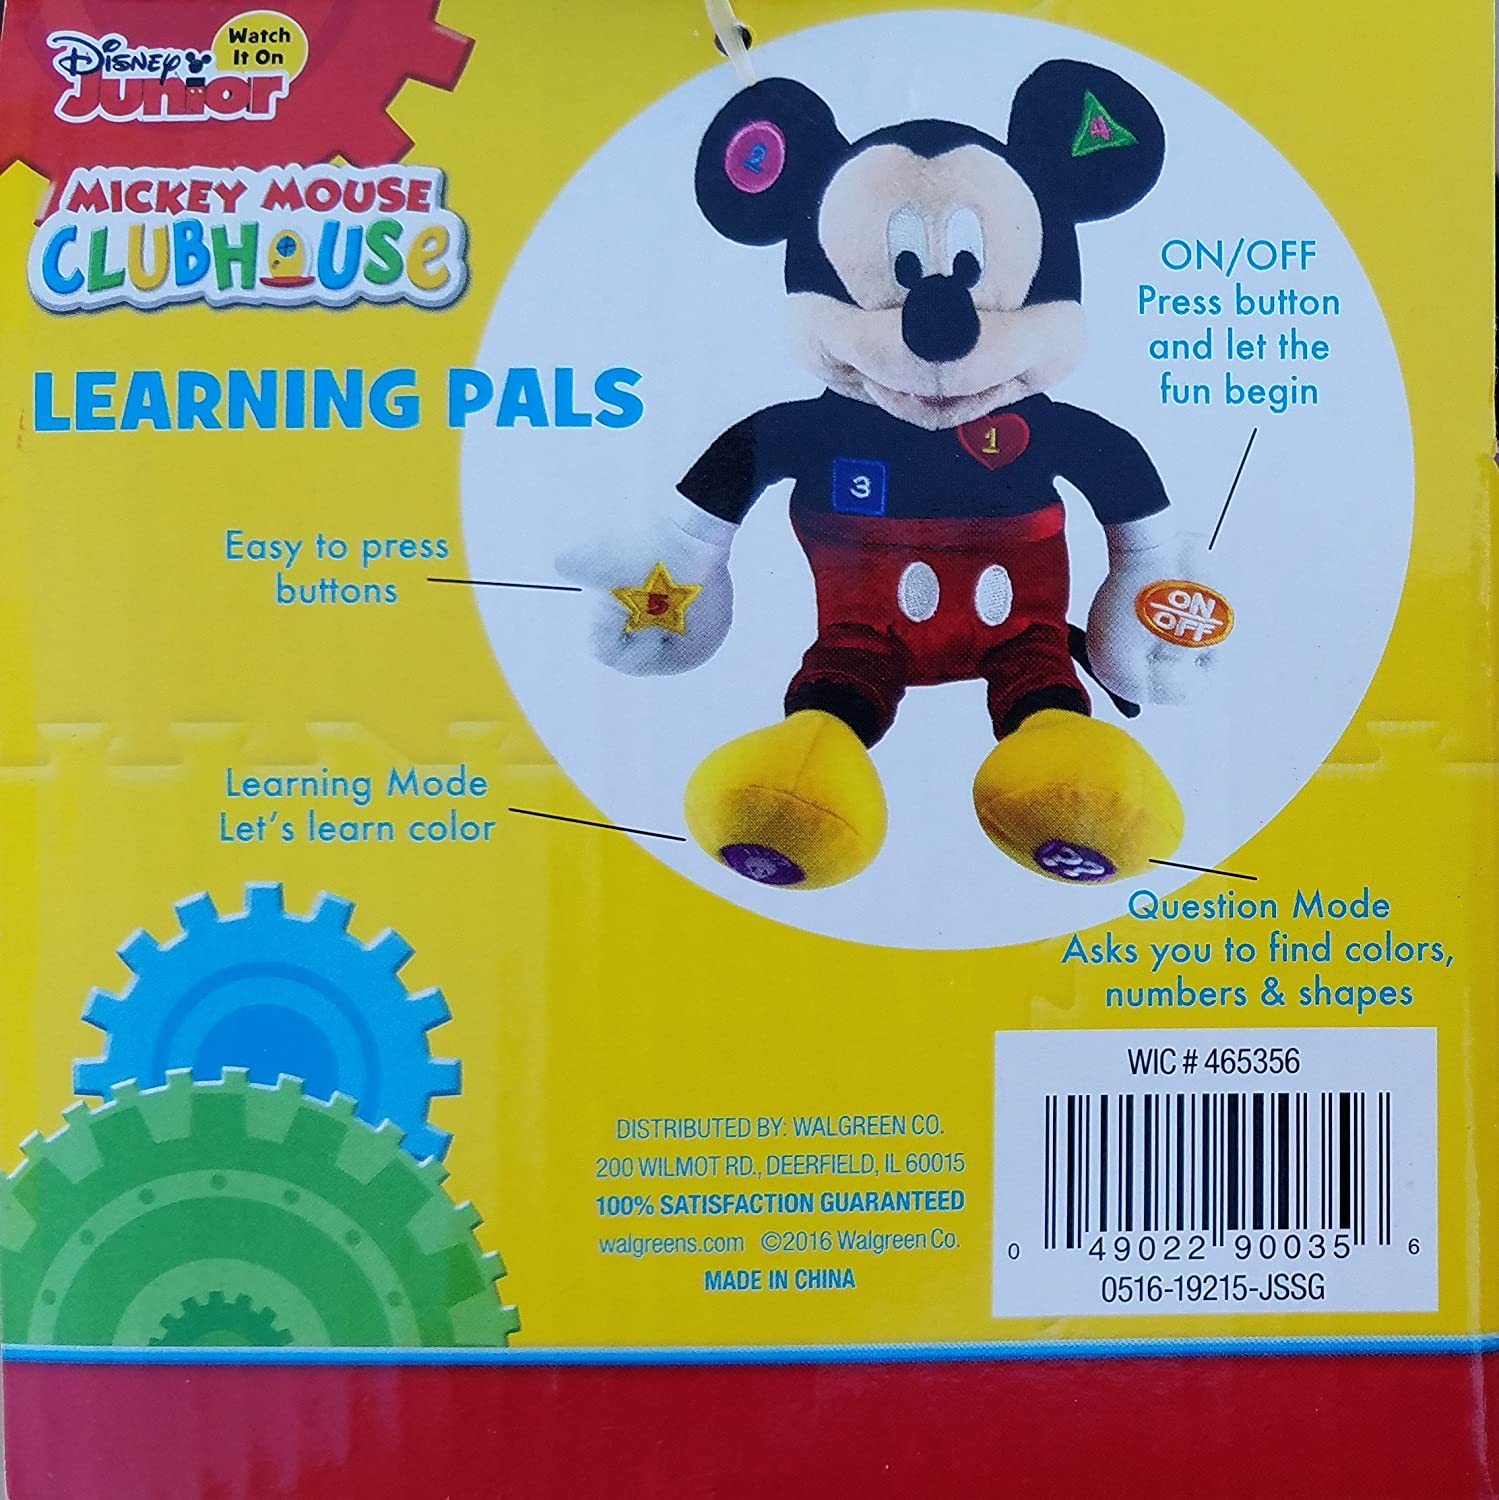 Amazon Disney Mickey Mouse Clubhouse Learning Pals Toys & Games